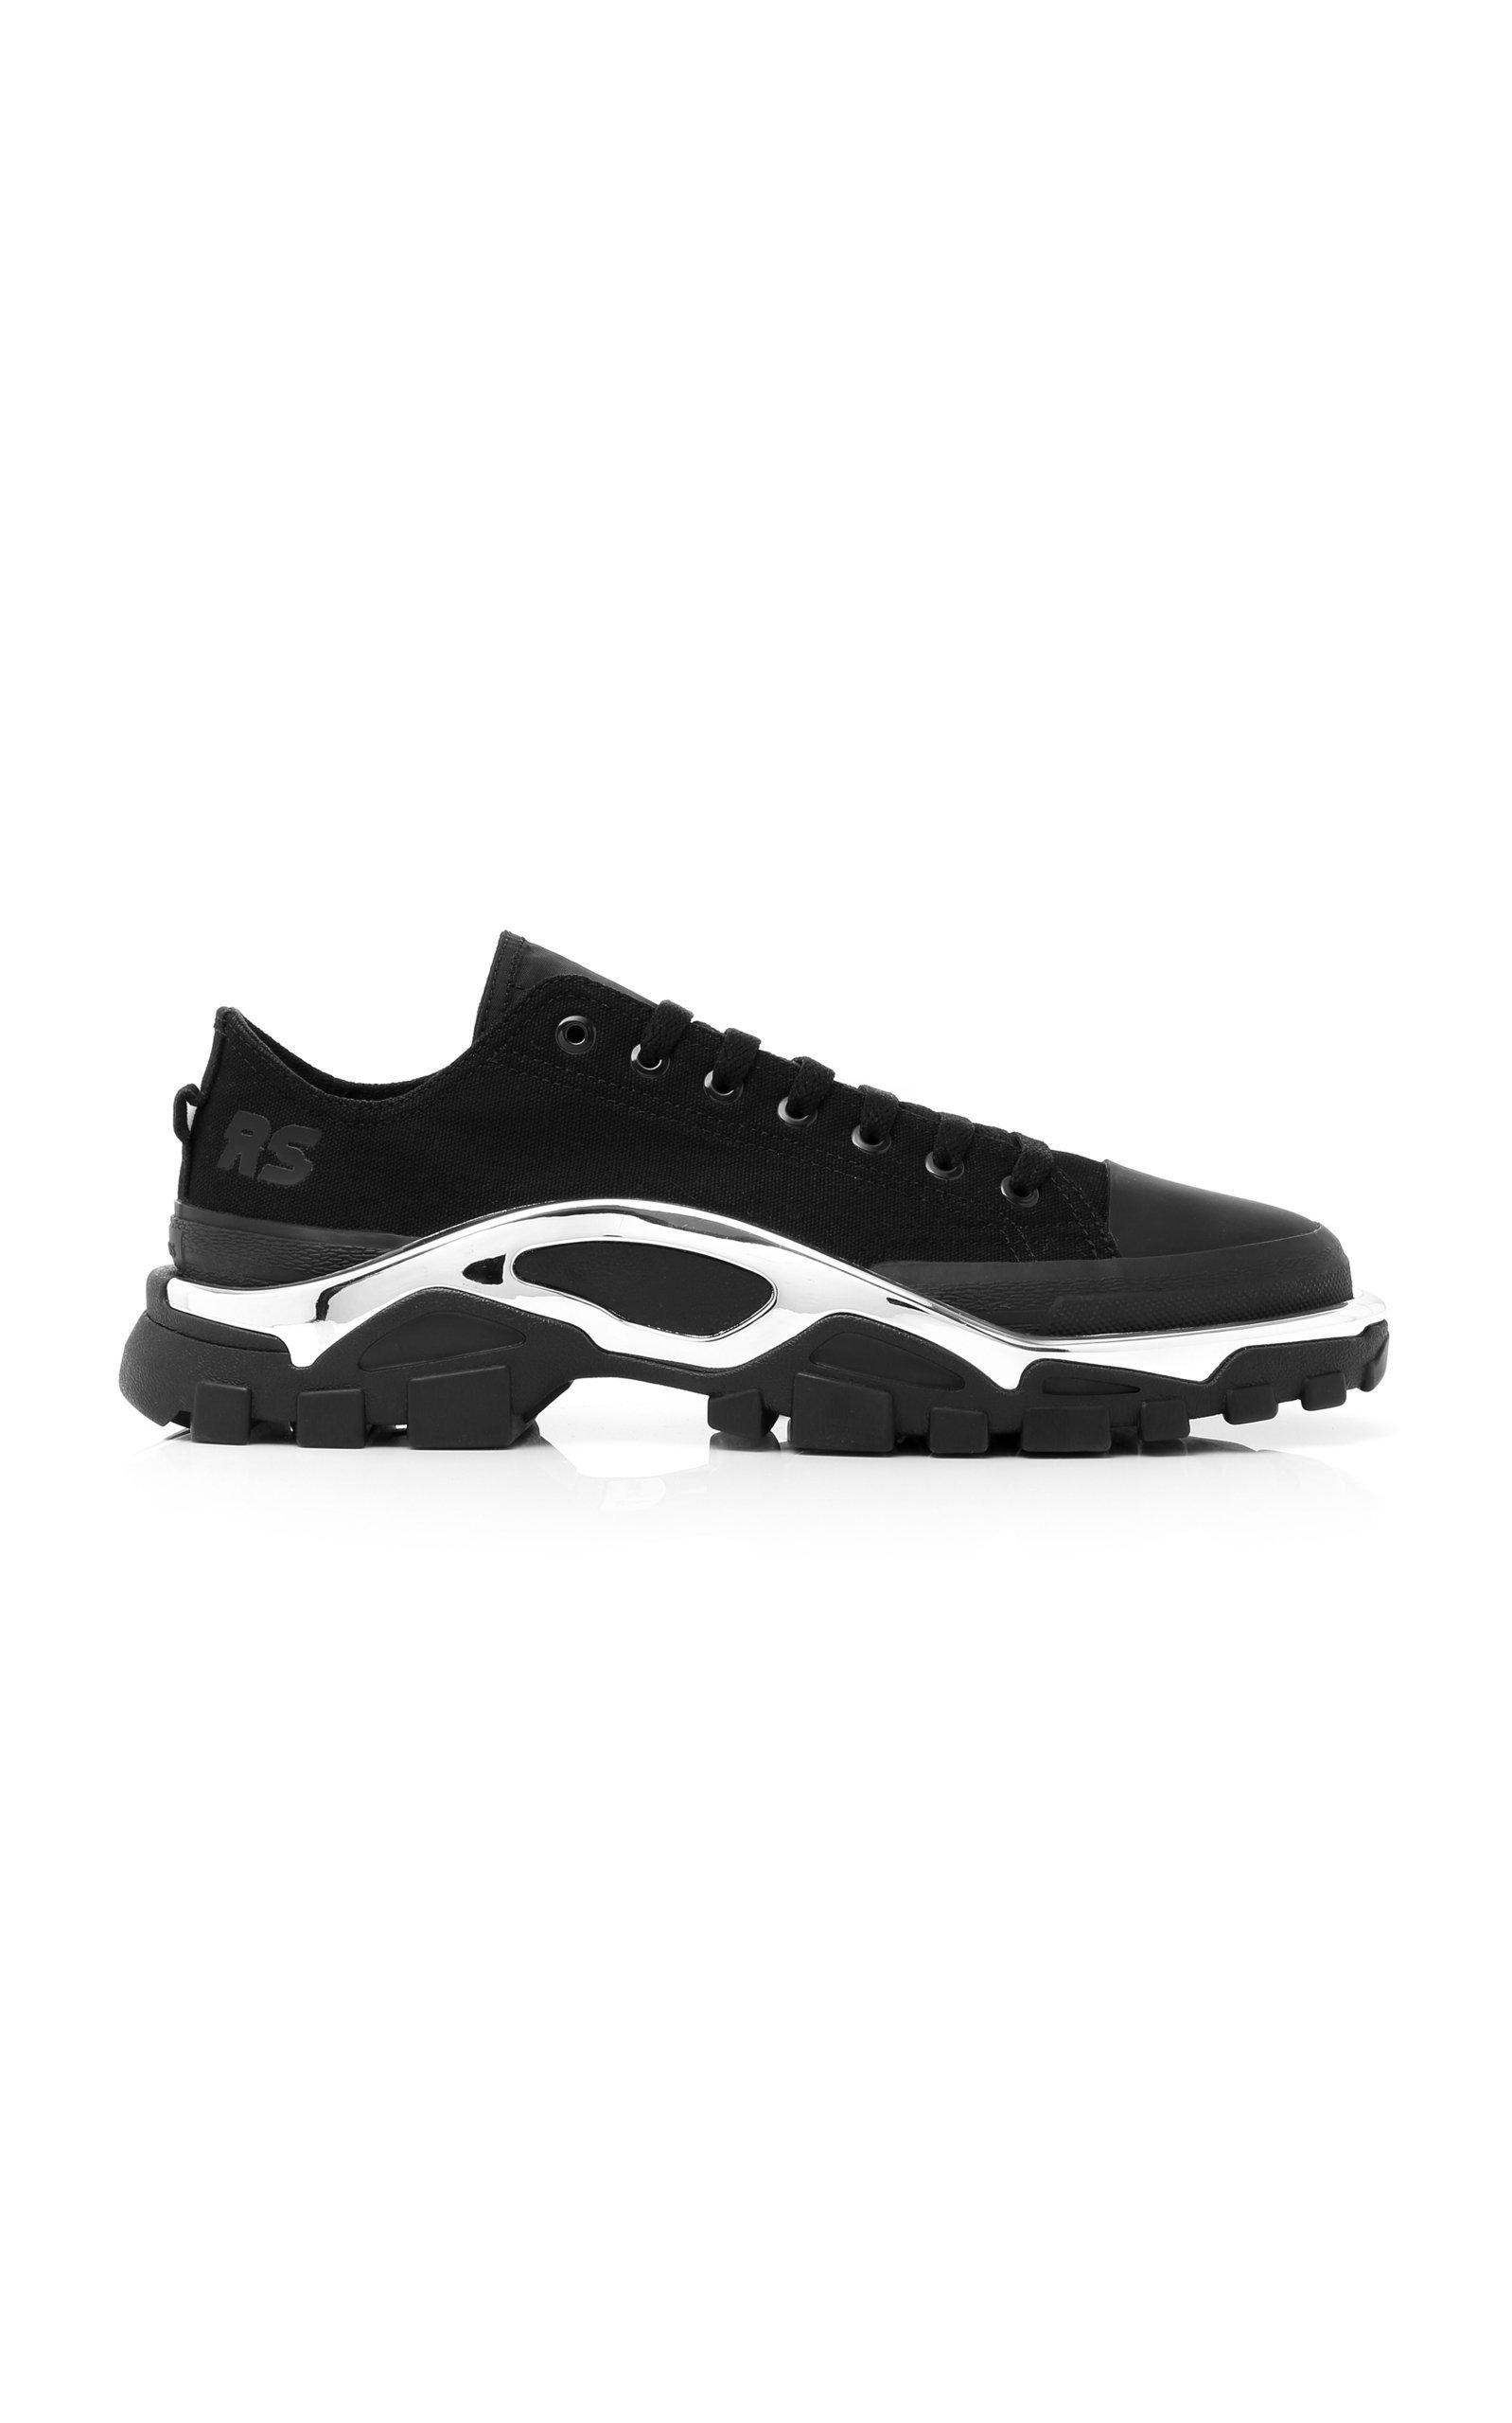 buy online 90ef7 b0e96 Adidas By Raf Simons Adidas X Raf Simons Detroit Runner Black Canvas  Trainers